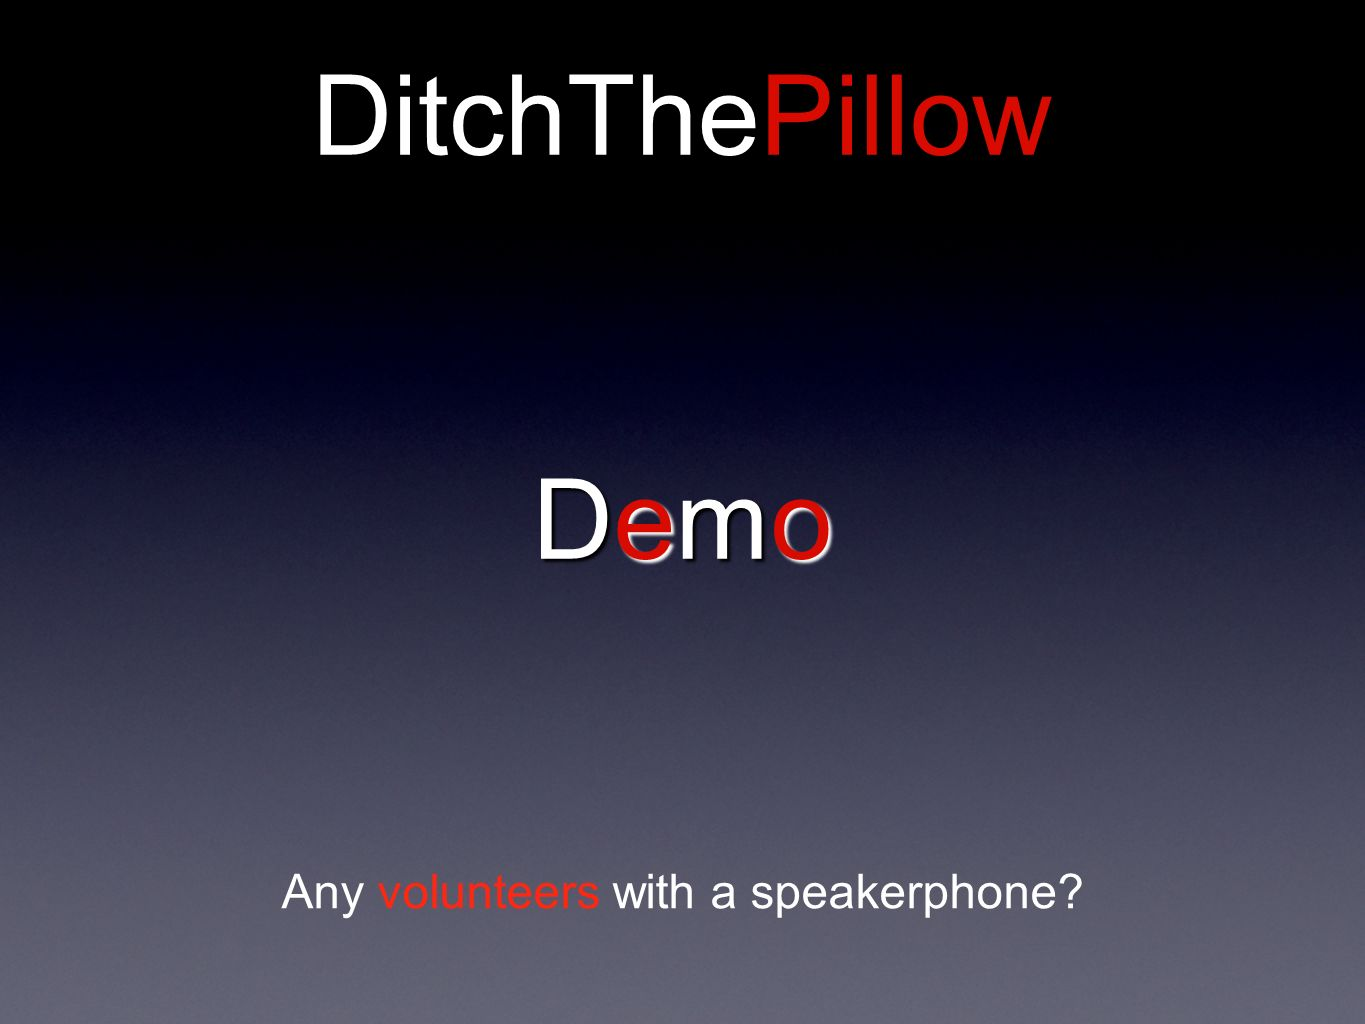 DitchThePillow DemoDemoDemoDemo Any volunteers with a speakerphone